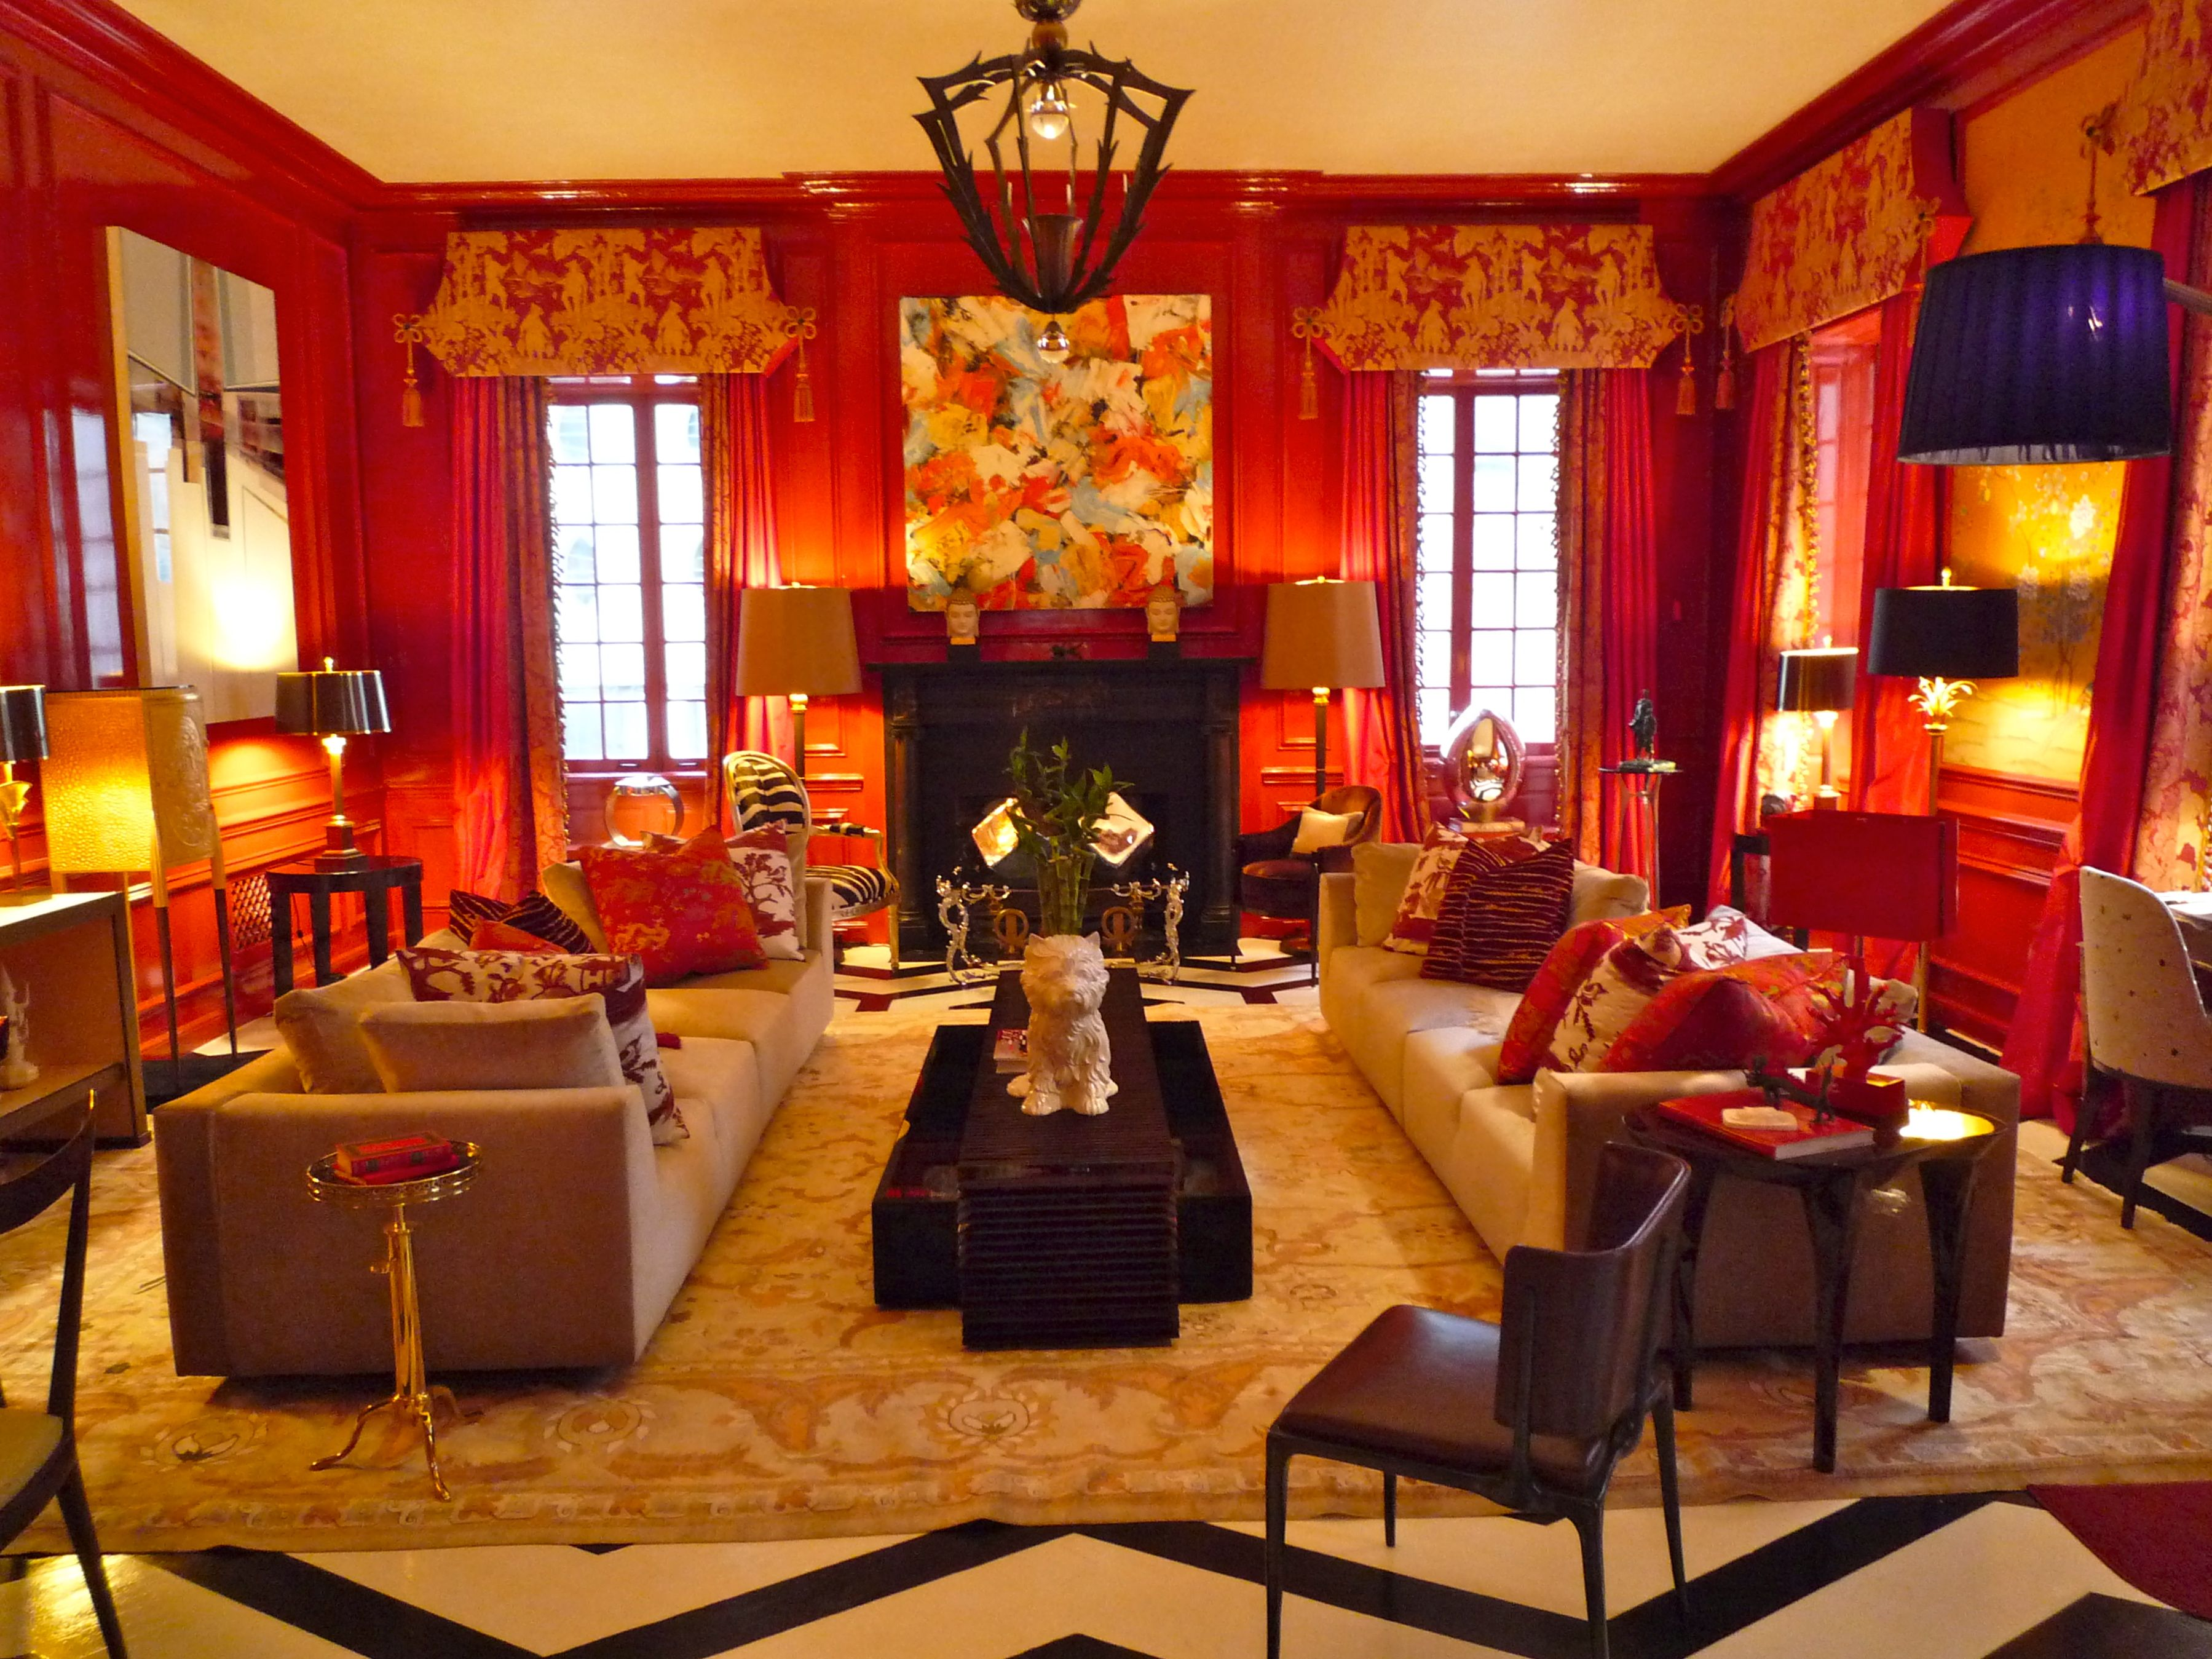 Adorable New Home Decorating Ideas With Chinese New Year Home Home Decor Asian Home Decor Decor